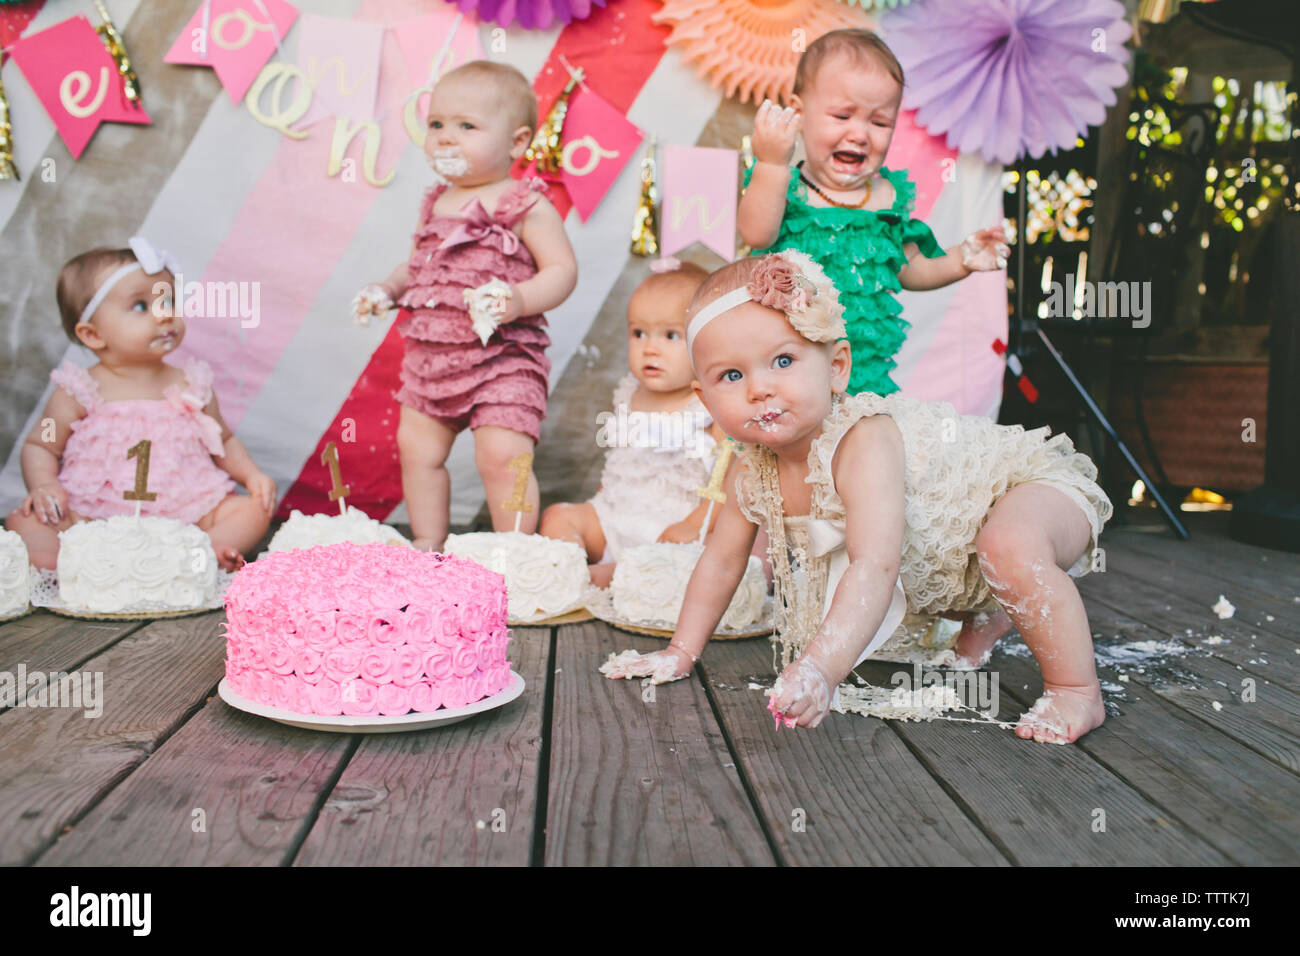 Baby girls with birthday cakes on floorboard - Stock Image